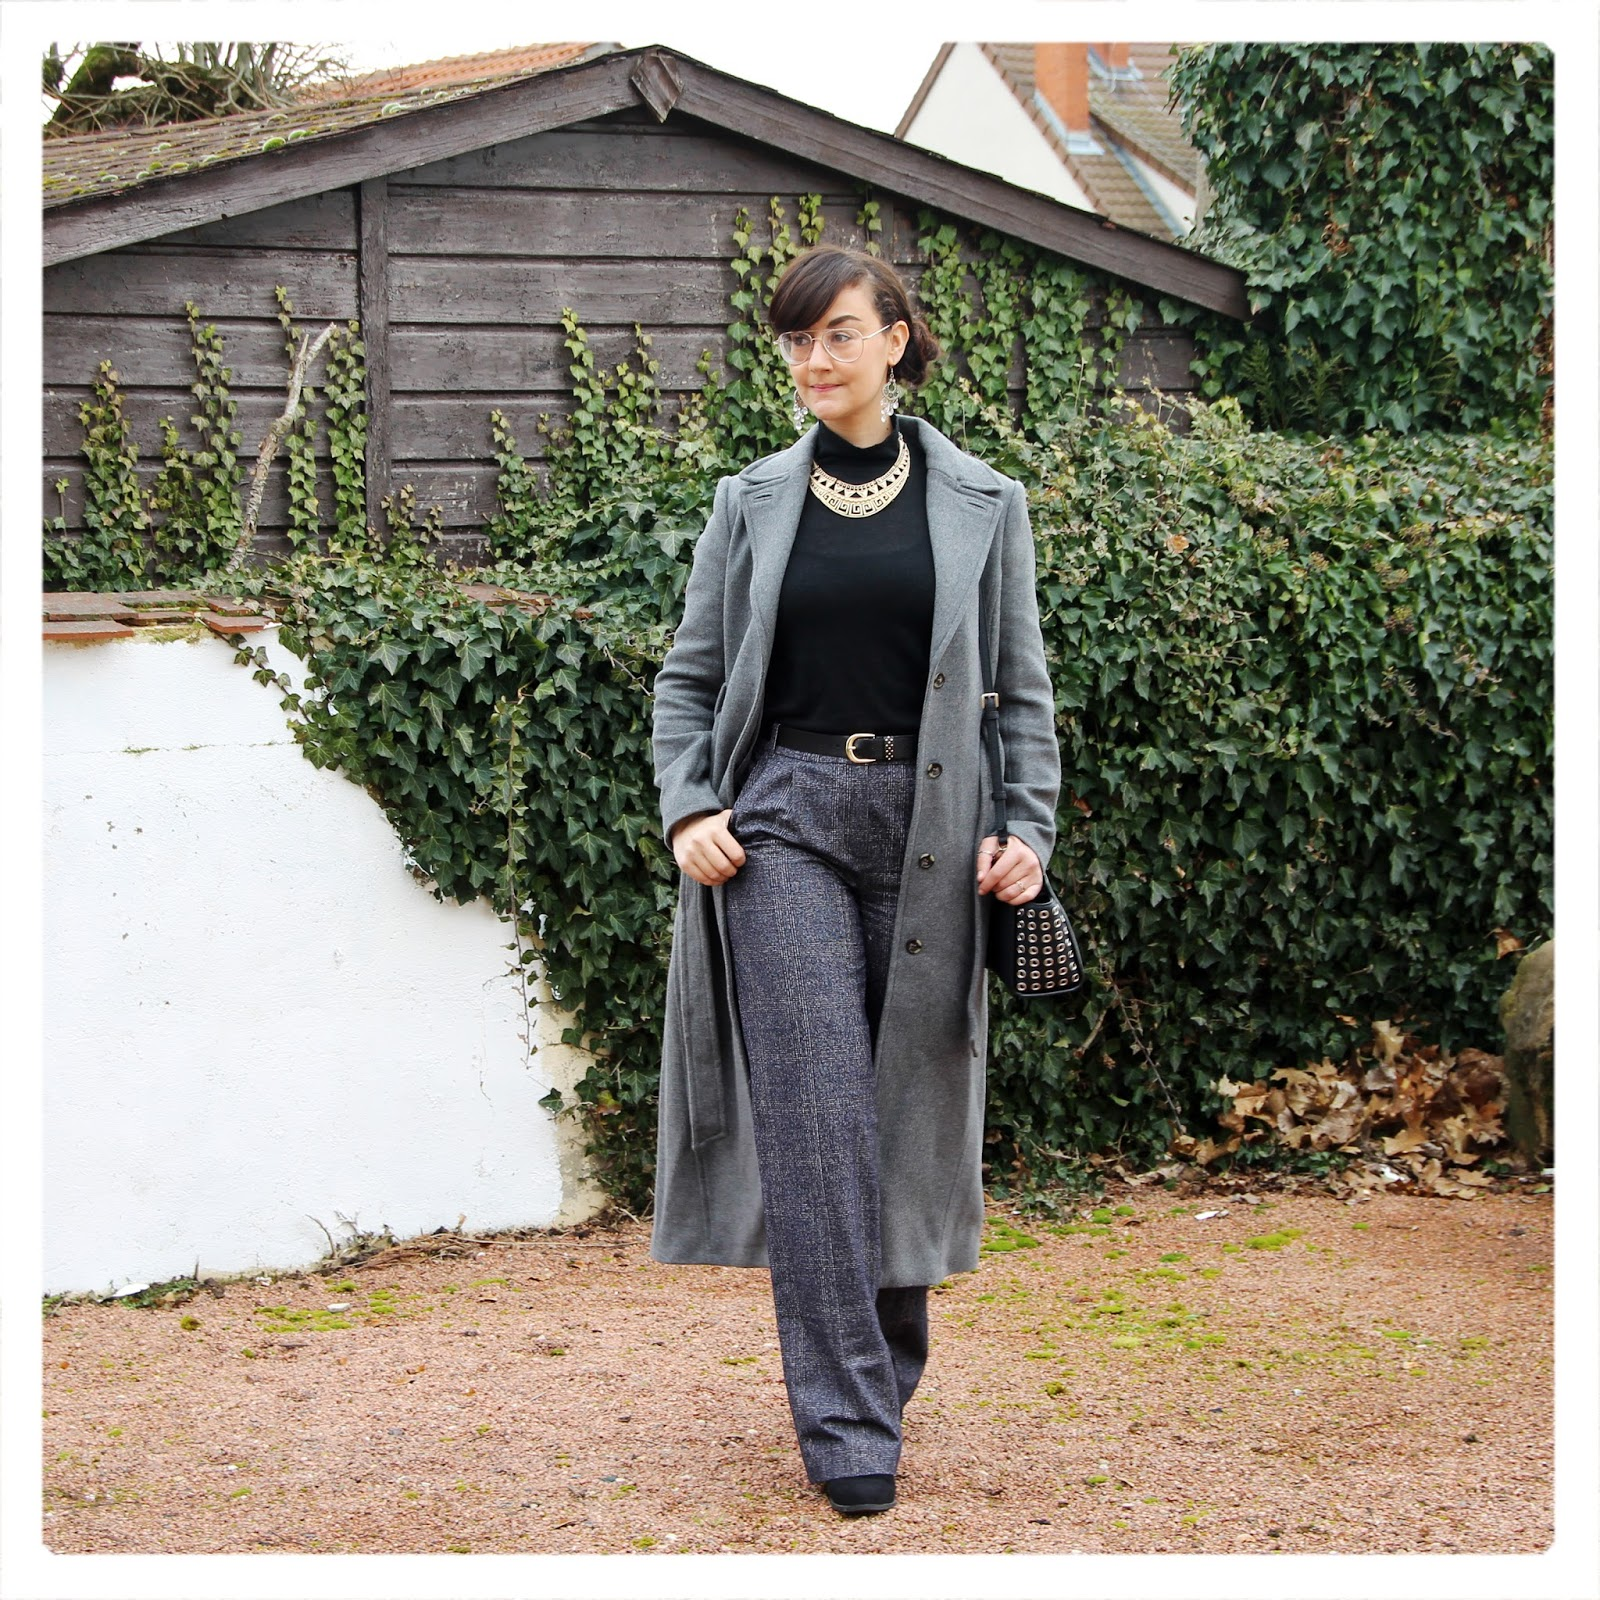 https://unblogdefille.blogspot.fr/2018/03/look-long-manteau-gris-et-pantalon-gris.html